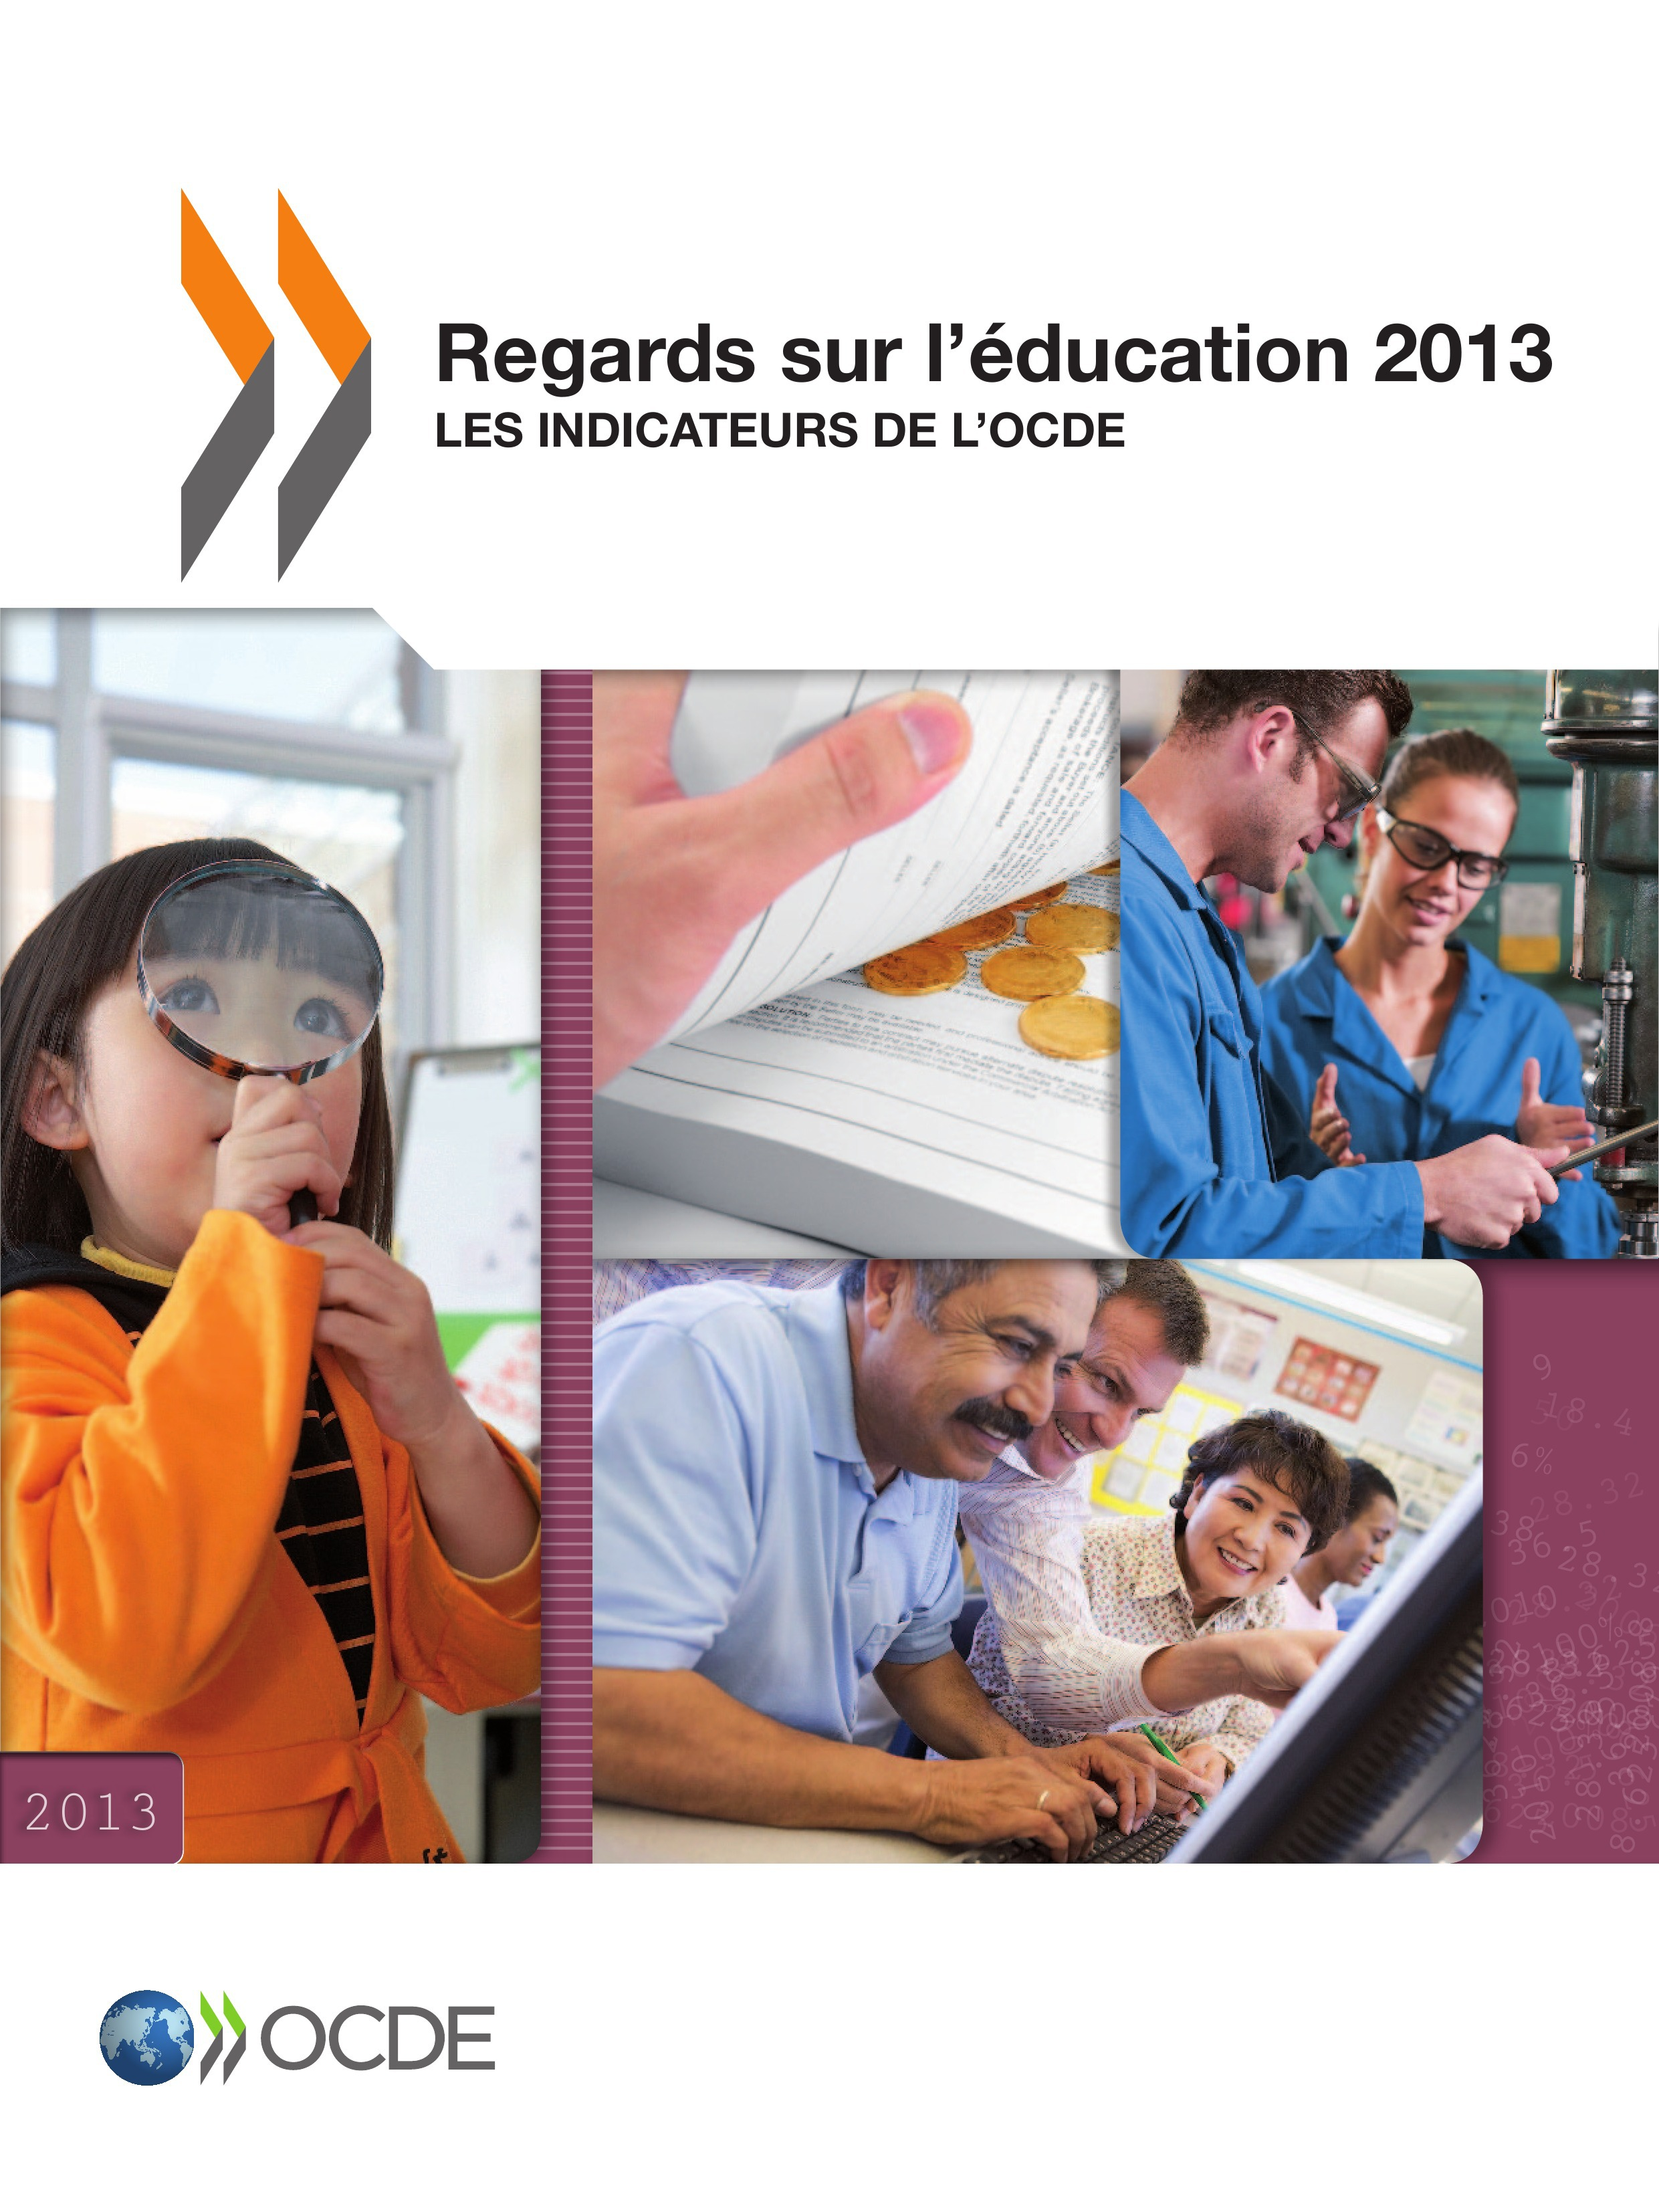 Regards sur l'éducation 2013 ; les indicateurs de l'OCDE